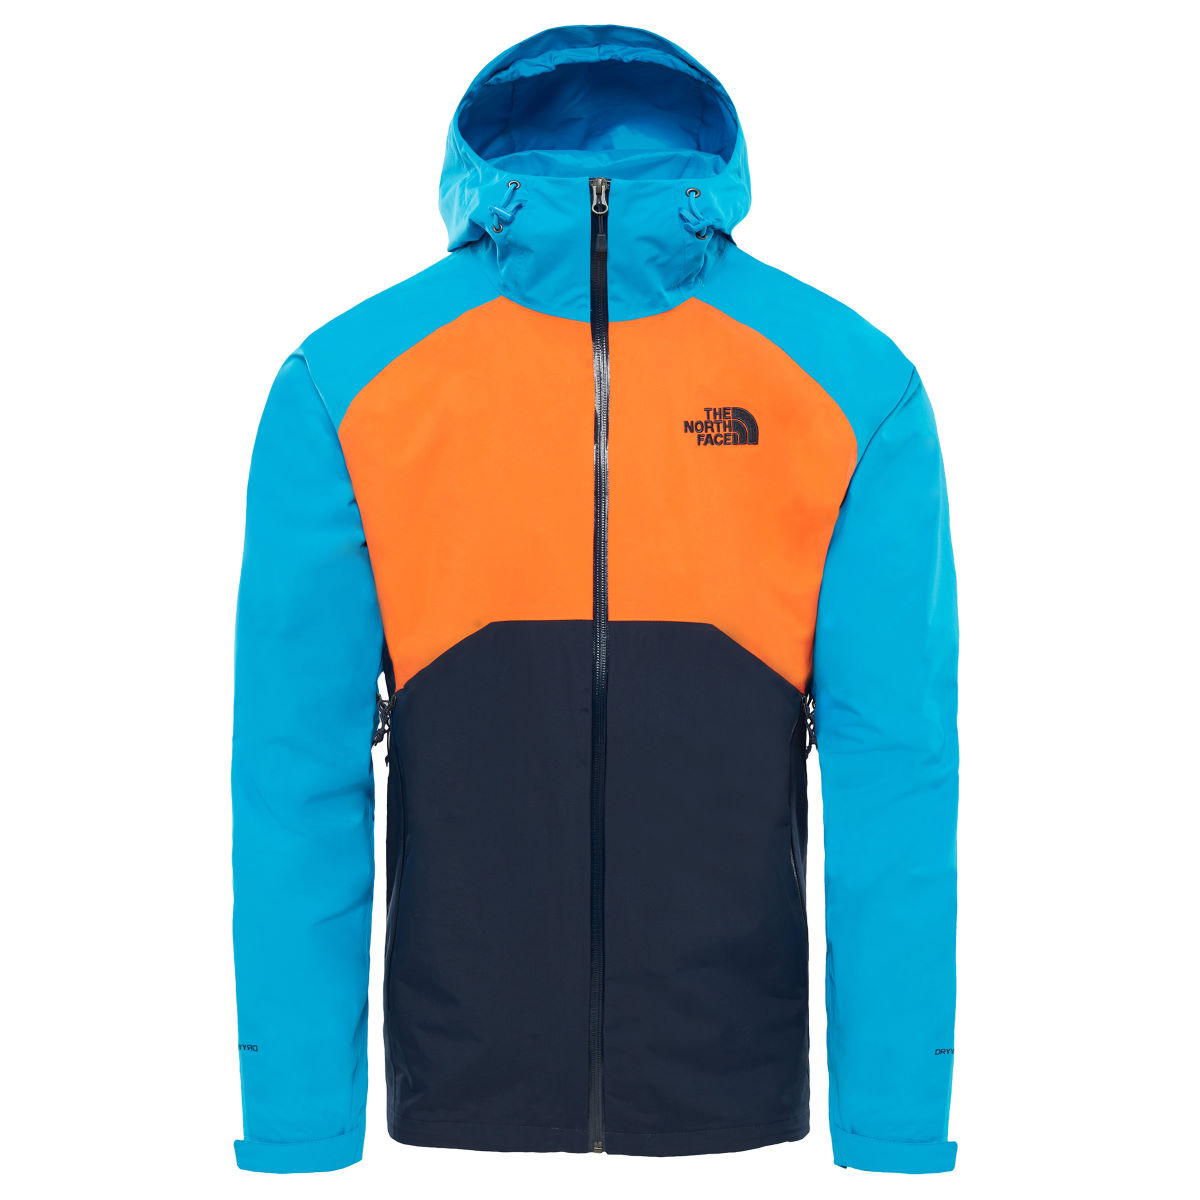 The North Face The North Face Stratos Jacket   Jackets